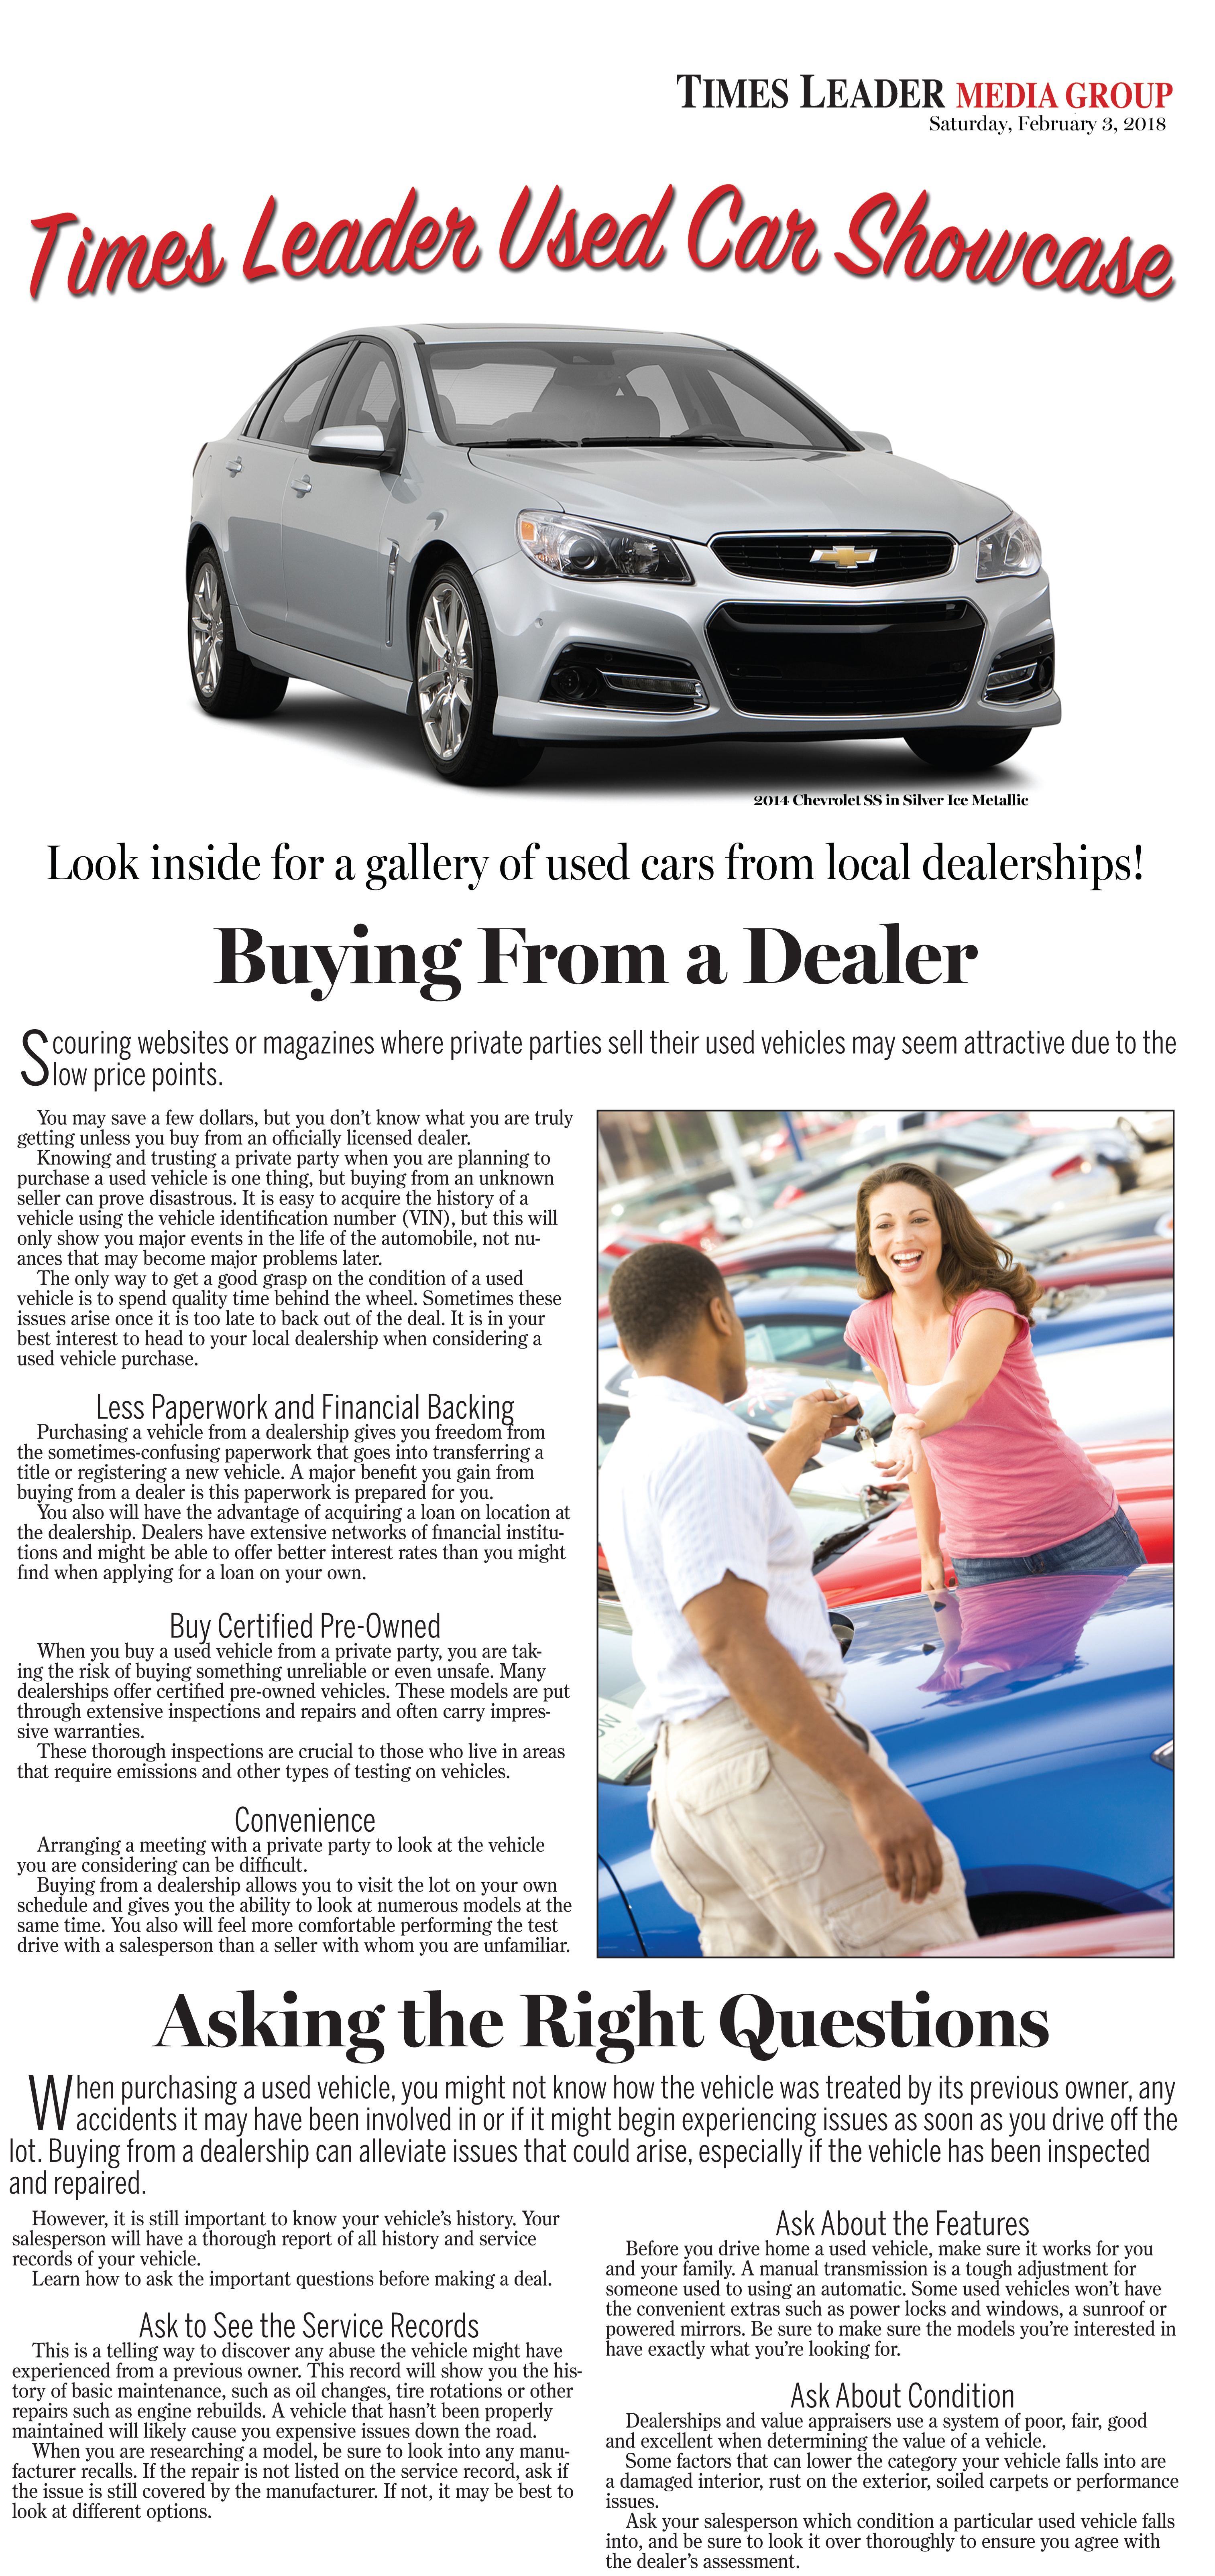 What to Look for when Buying A Used Car Lovely Used Car Showcase